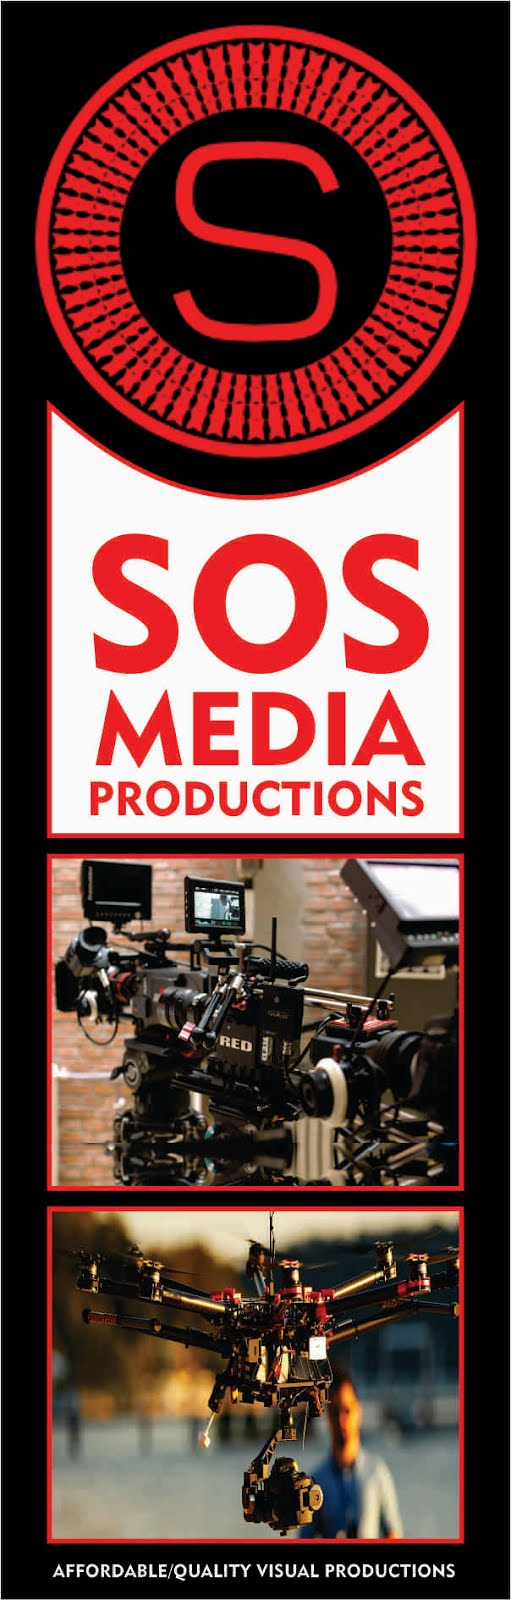 SOS MEDIA PRODUCTIONS